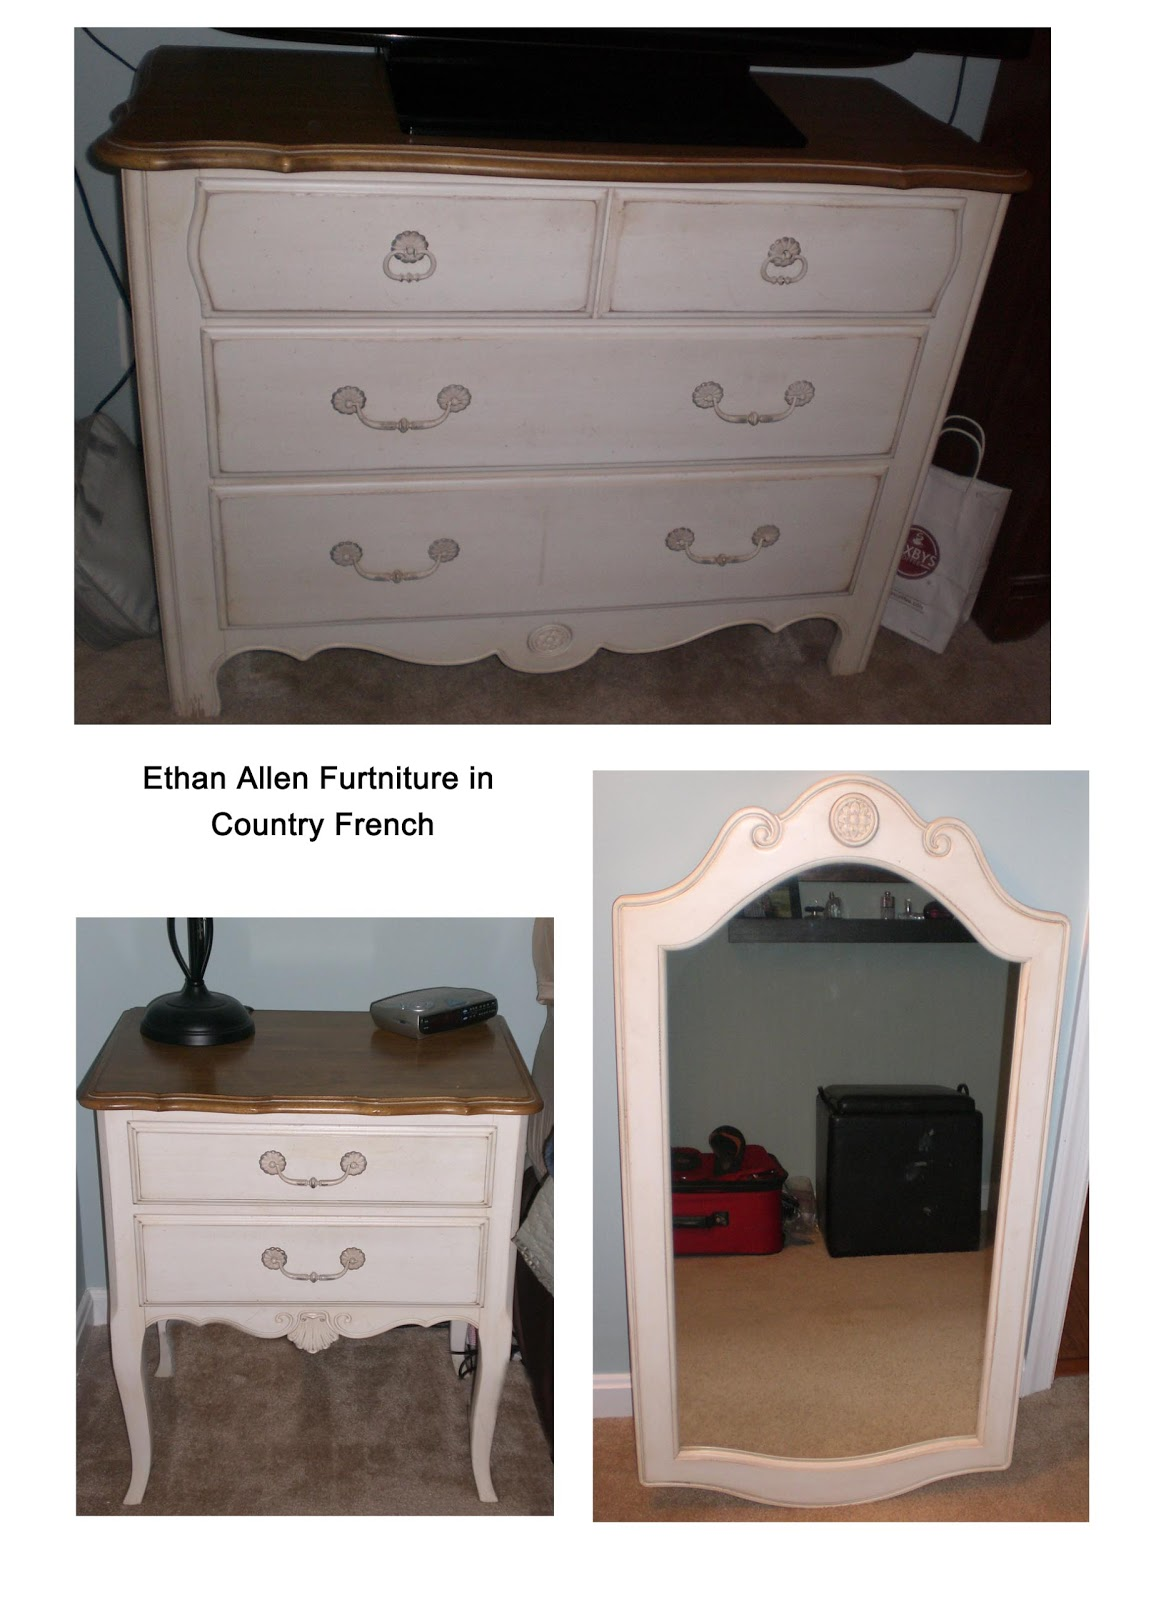 Falls design reader redesign craigslist throwaway for Ethan allen furniture